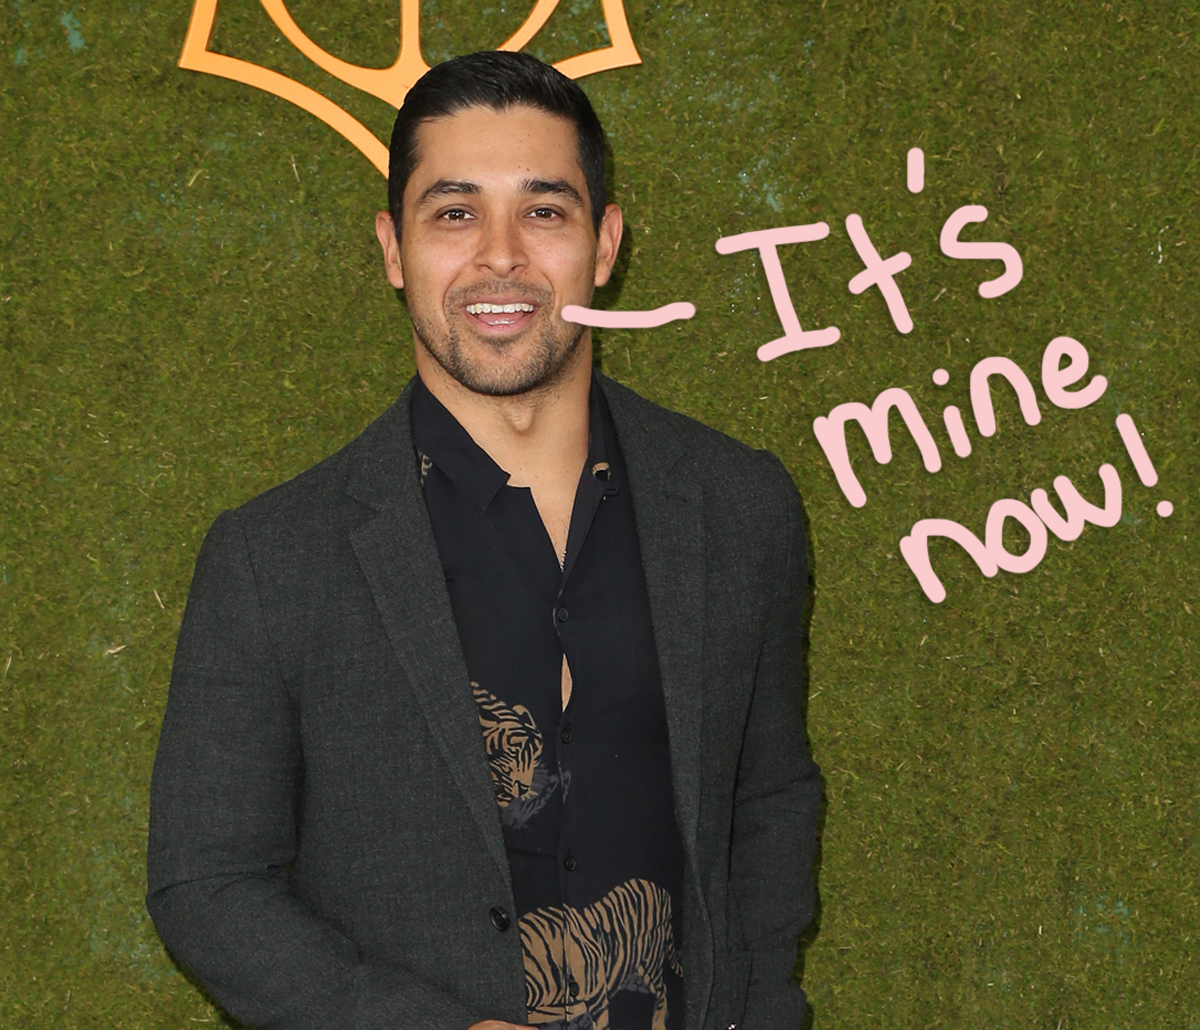 Wilmer Valderrama Bought The Iconic That 70s Show Car!